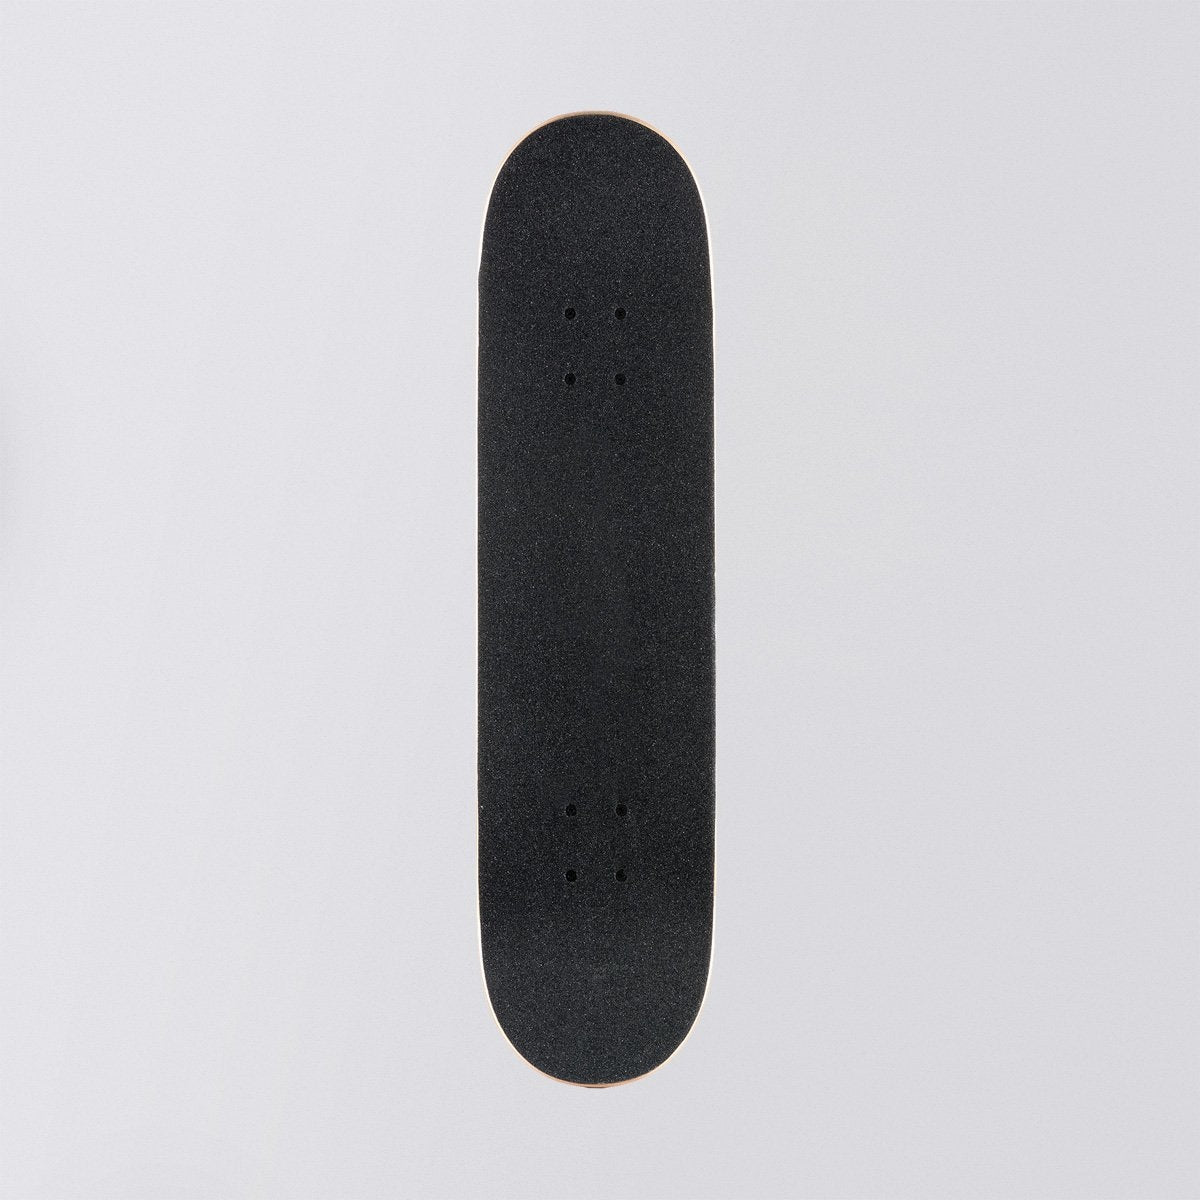 Rollersnakes Wordmark Pre-Built Complete Black Paint - 7.75 - Skateboard